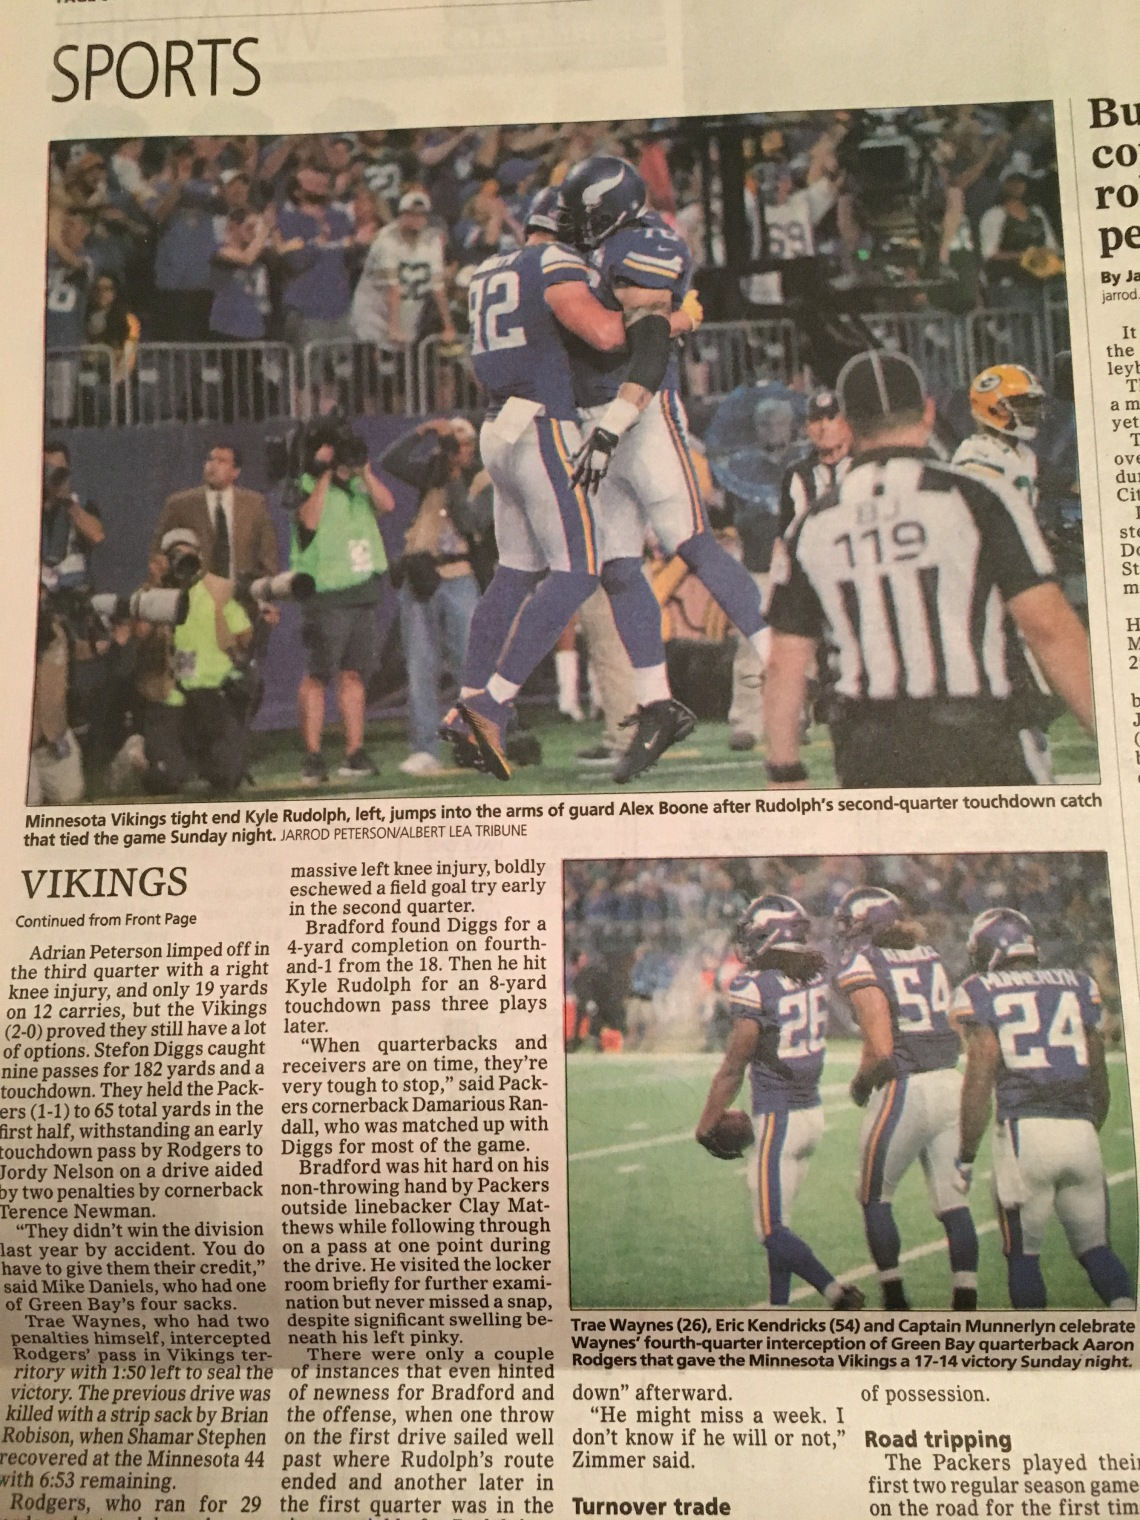 Some pictures I took that ran in the sports section of The Albert Lea Tribune.